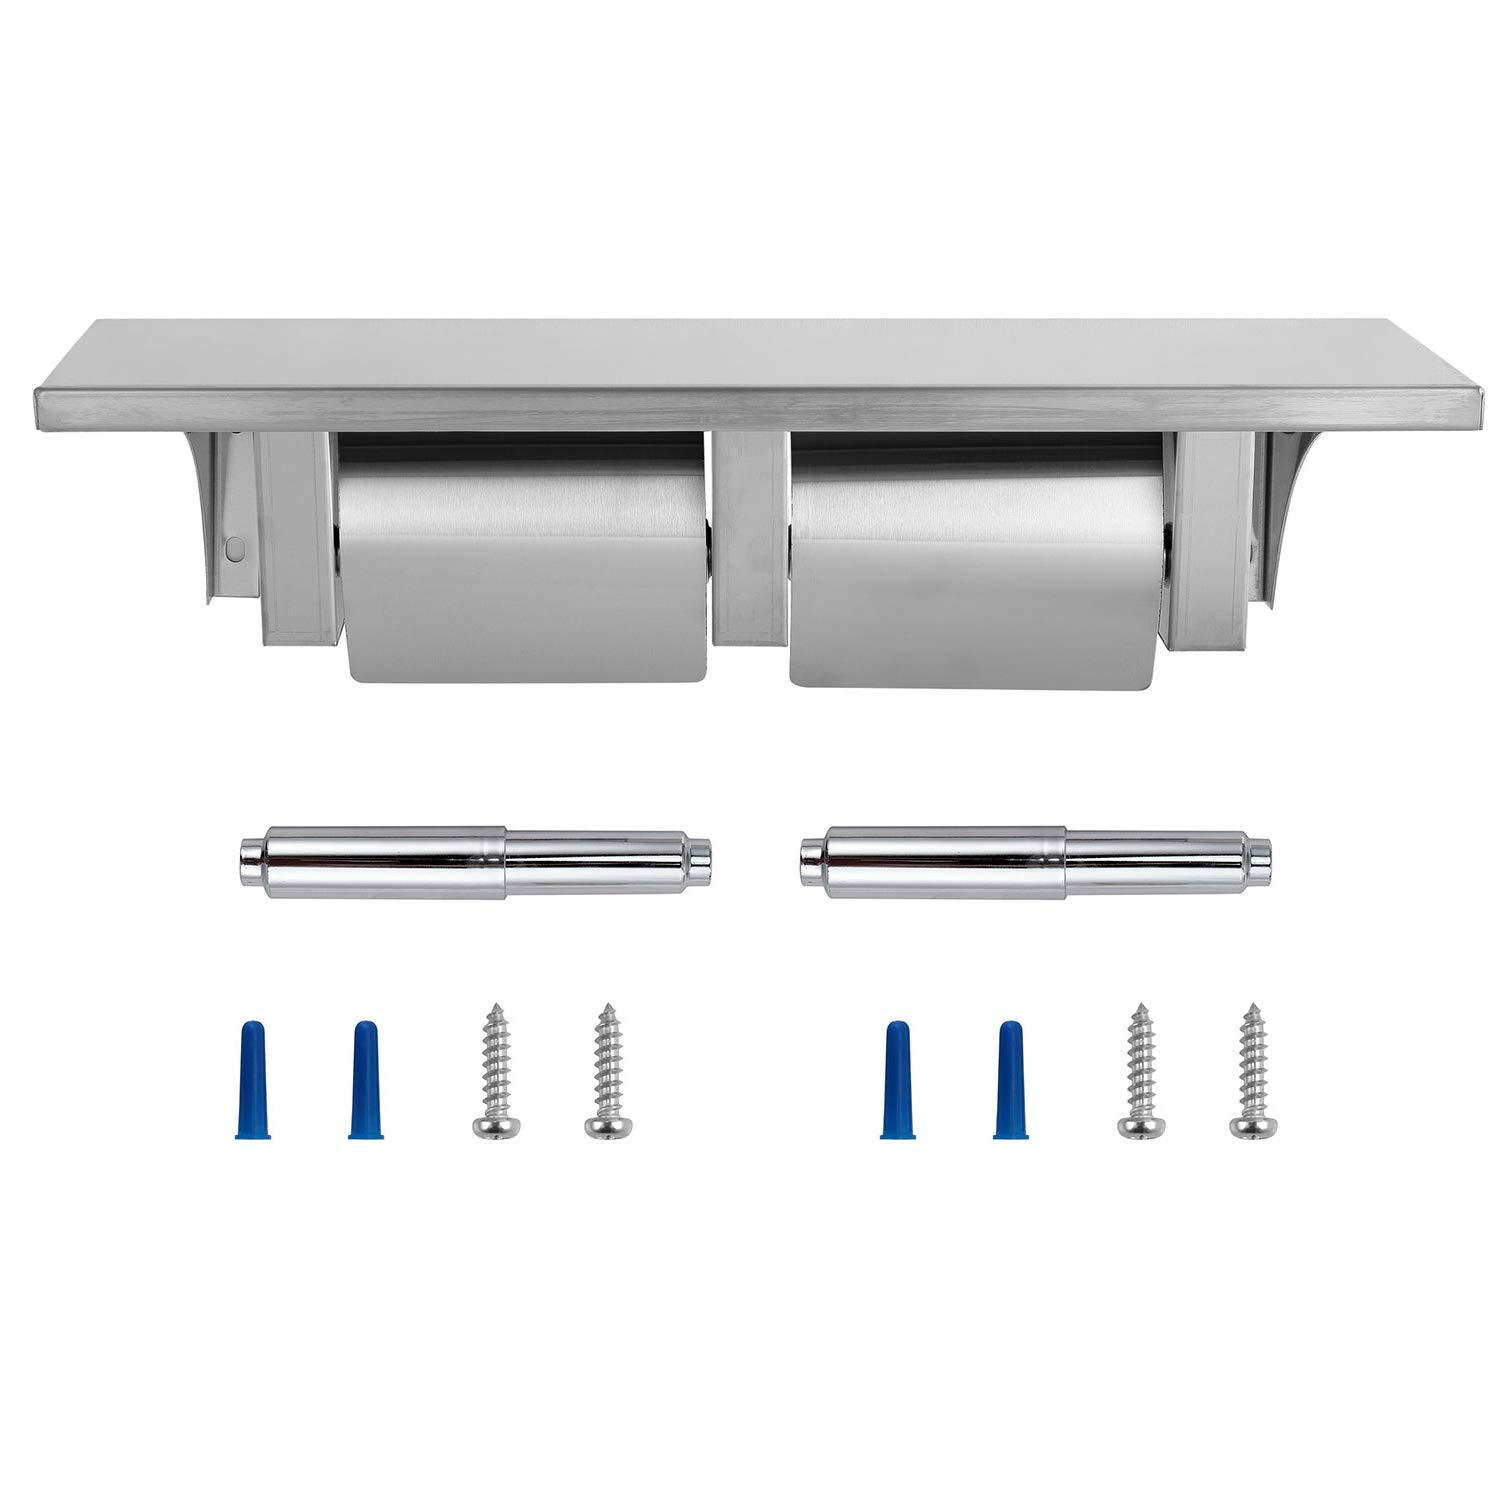 Dependable Direct Pack of 8 - Double Roll Toilet Paper Holder and Shelf - Stainless Steel - Satin Finish - Hooded